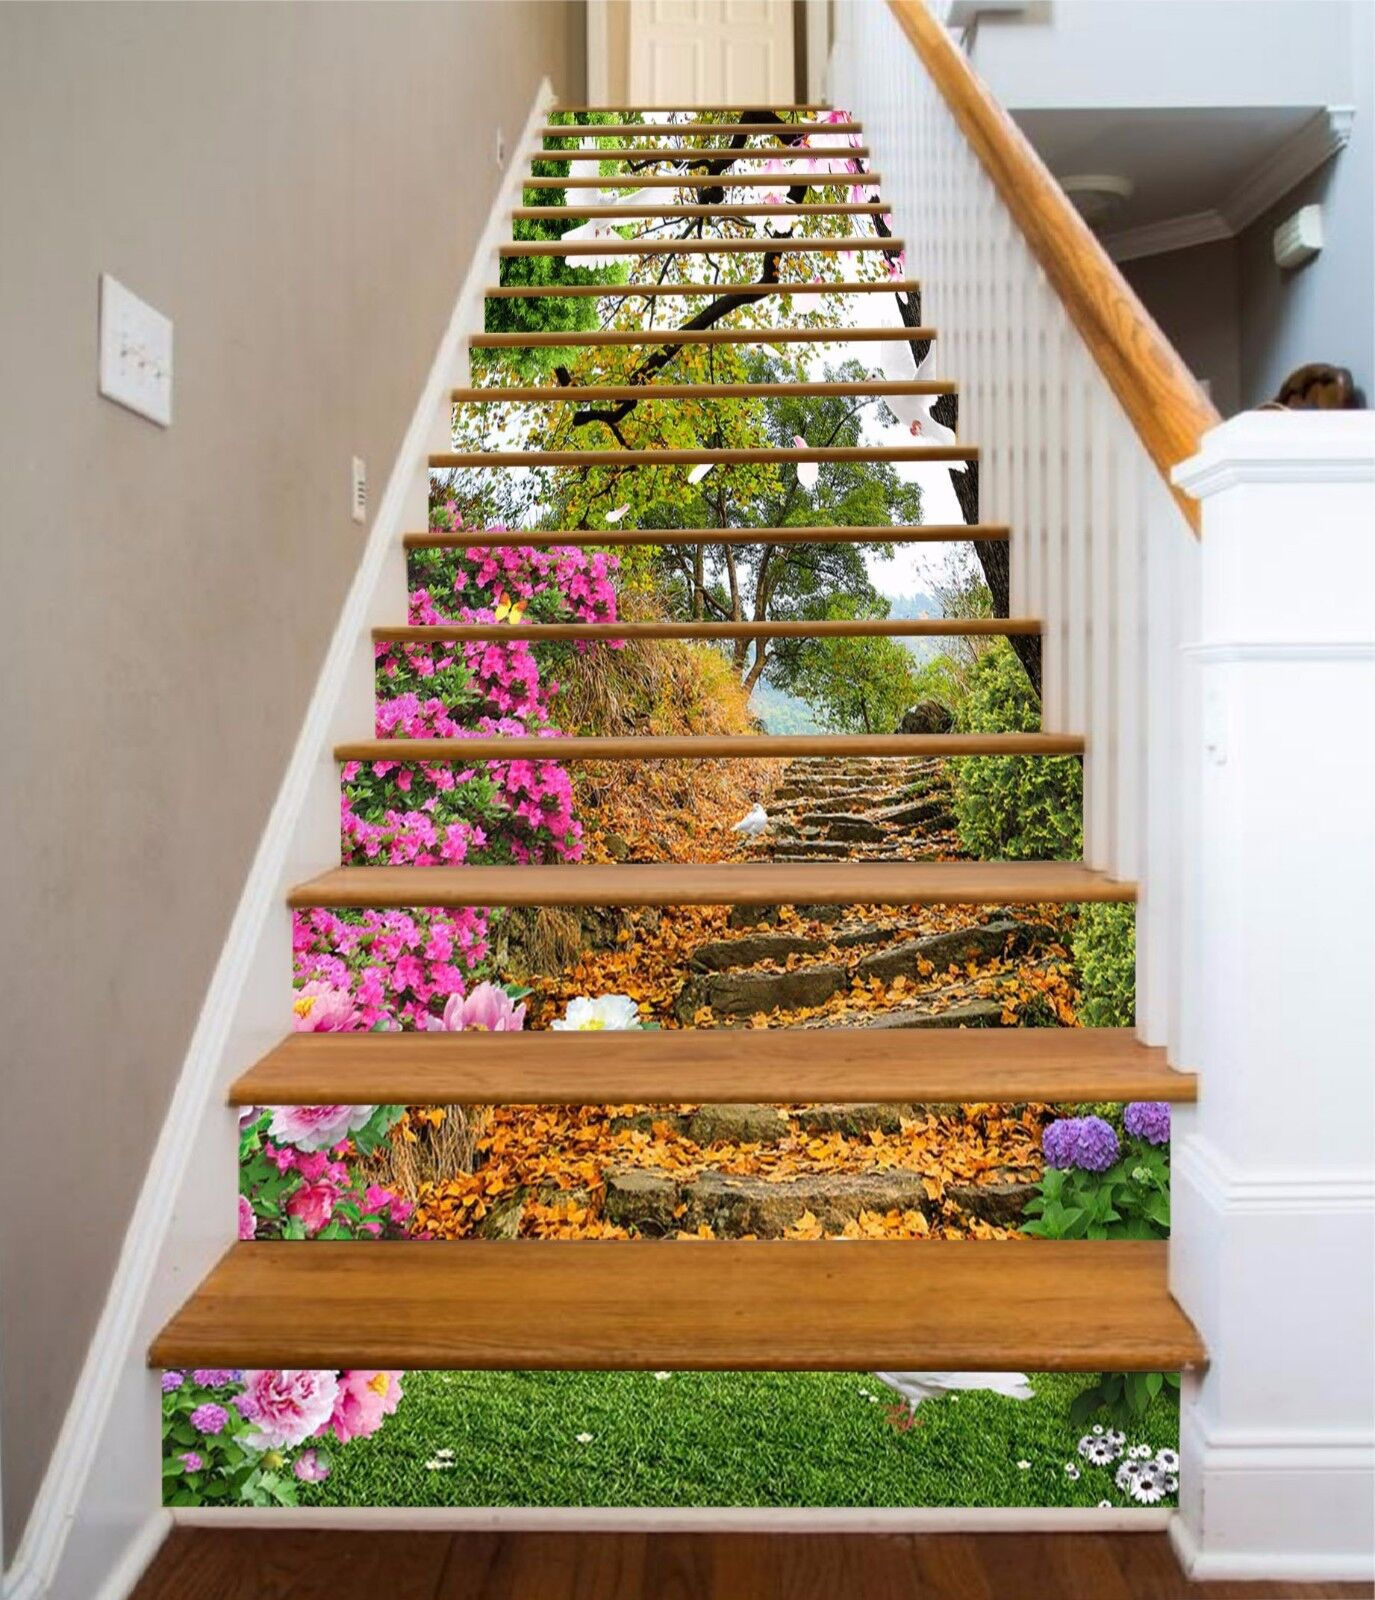 3D Spring View 8457 Stair Risers Decoration Photo Mural Vinyl Decal Wallpaper AU